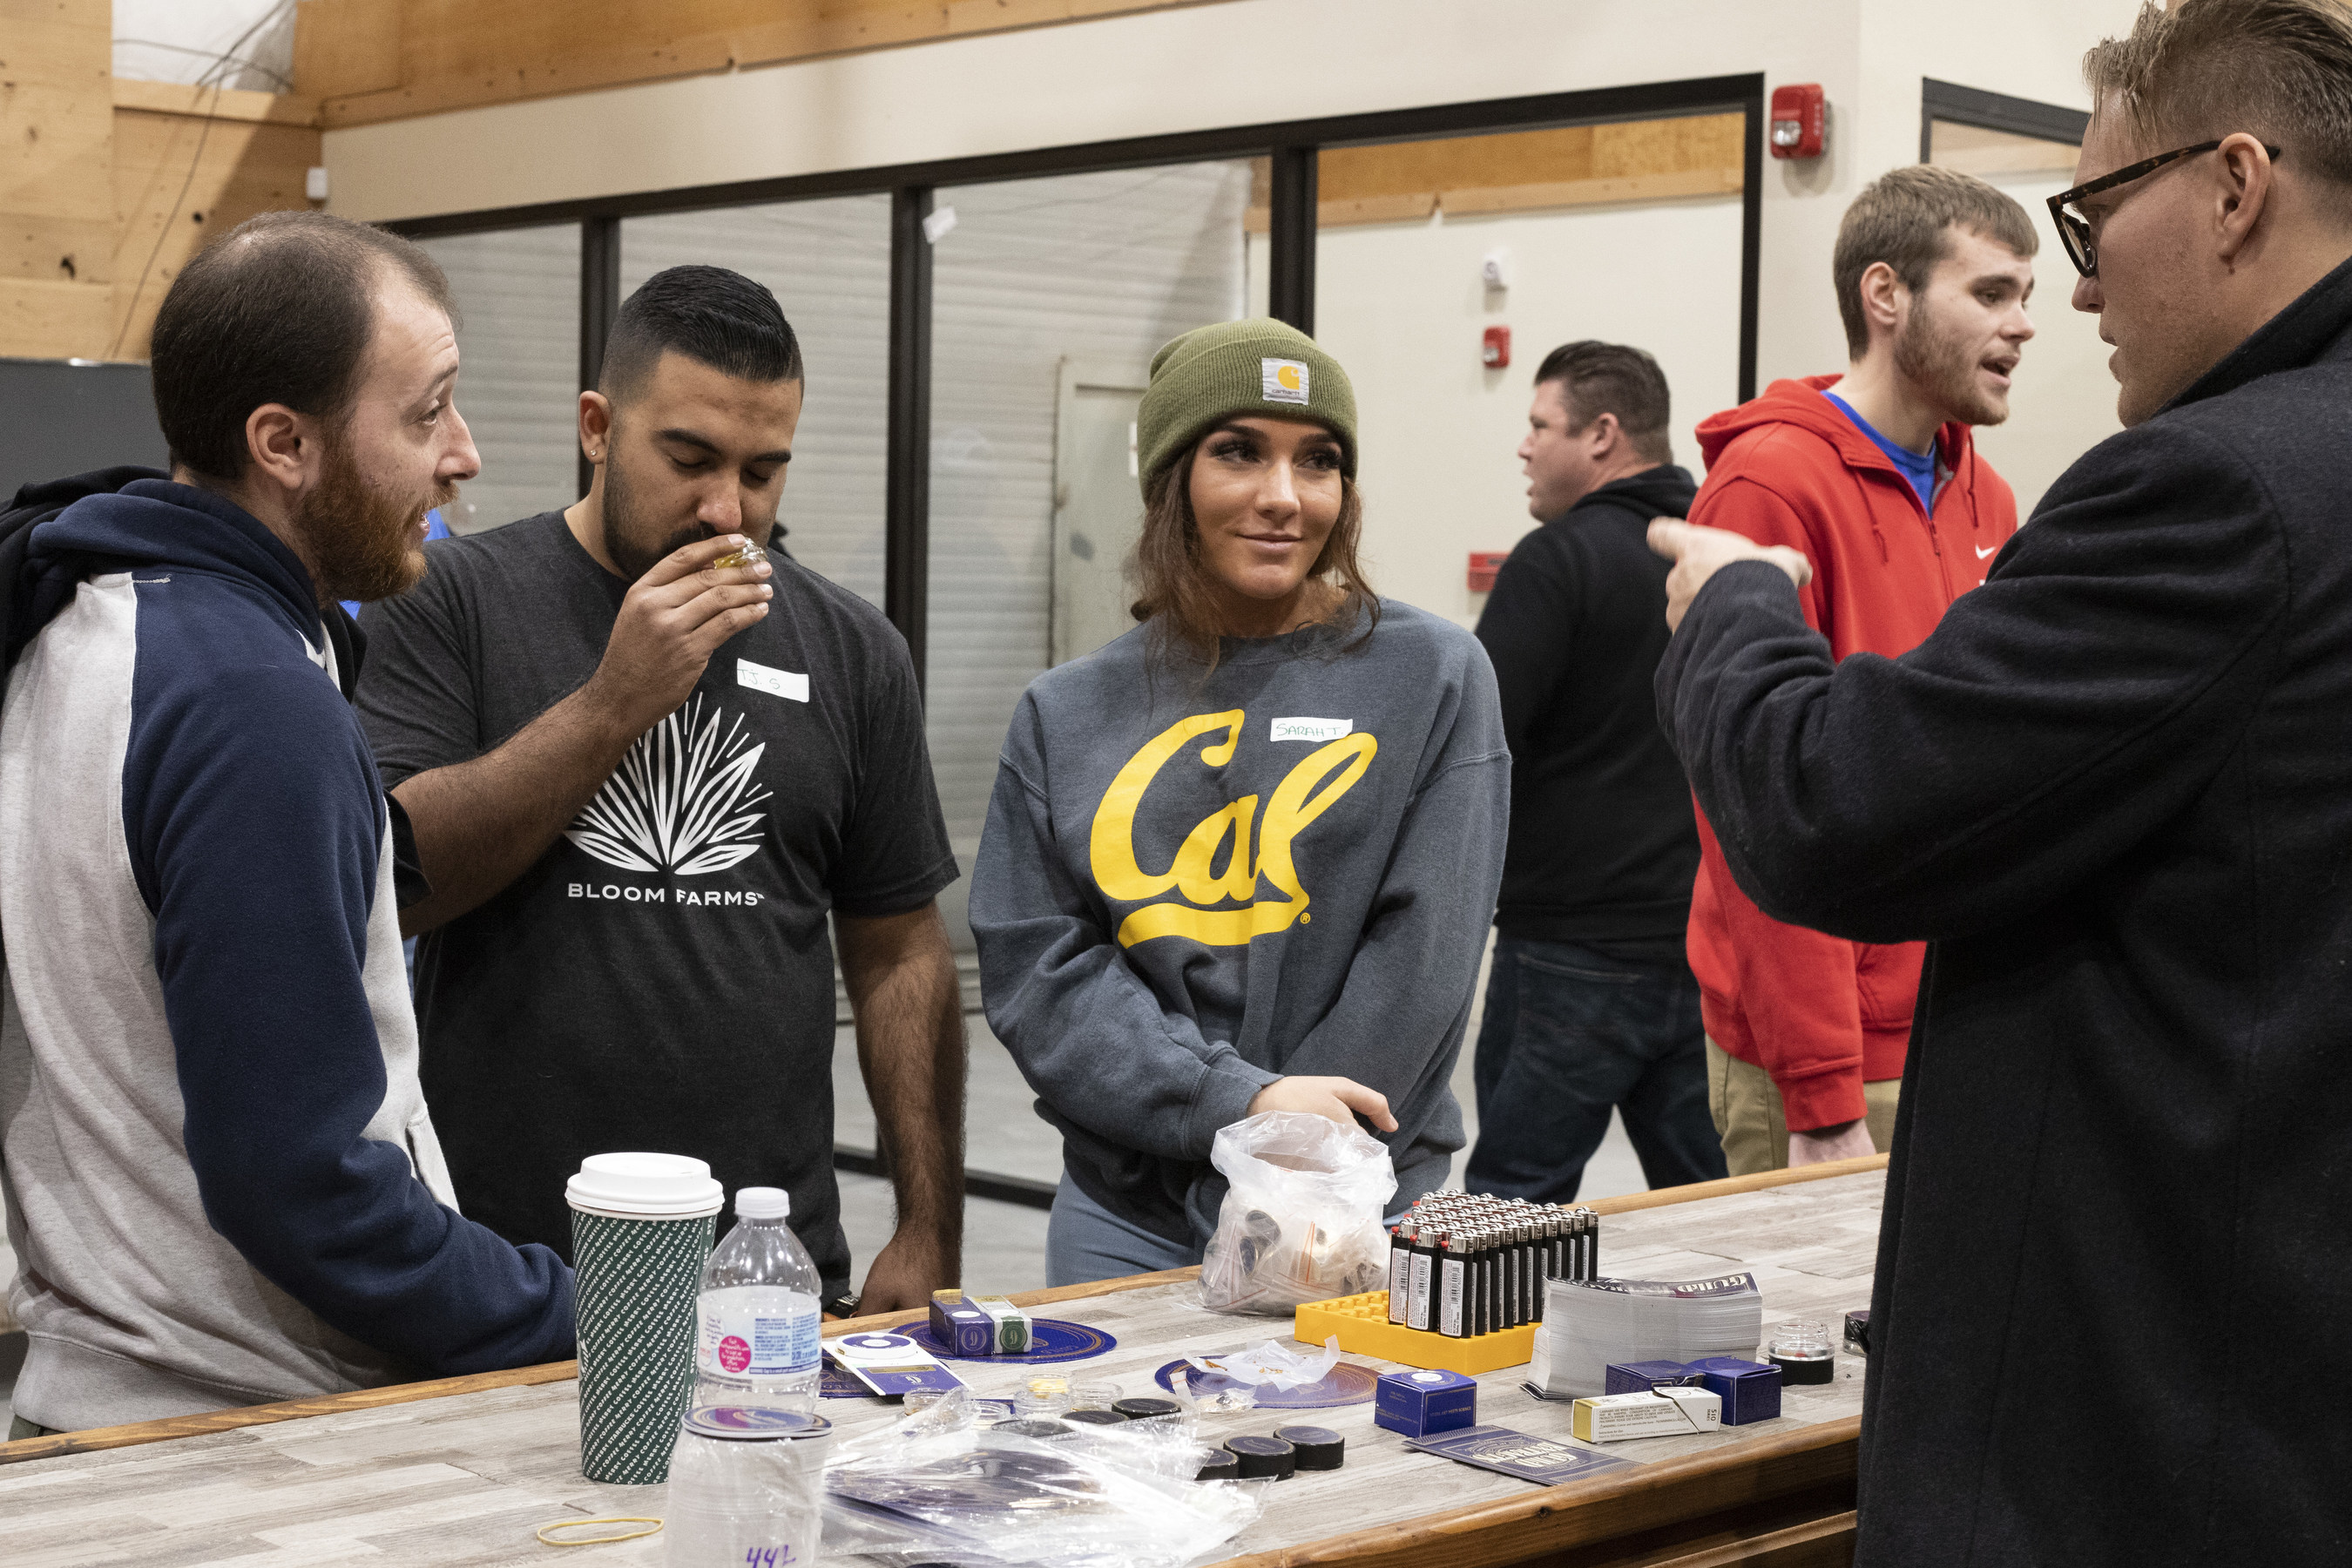 CoCo Farms hosts employee training with licensed cannabis vendors.